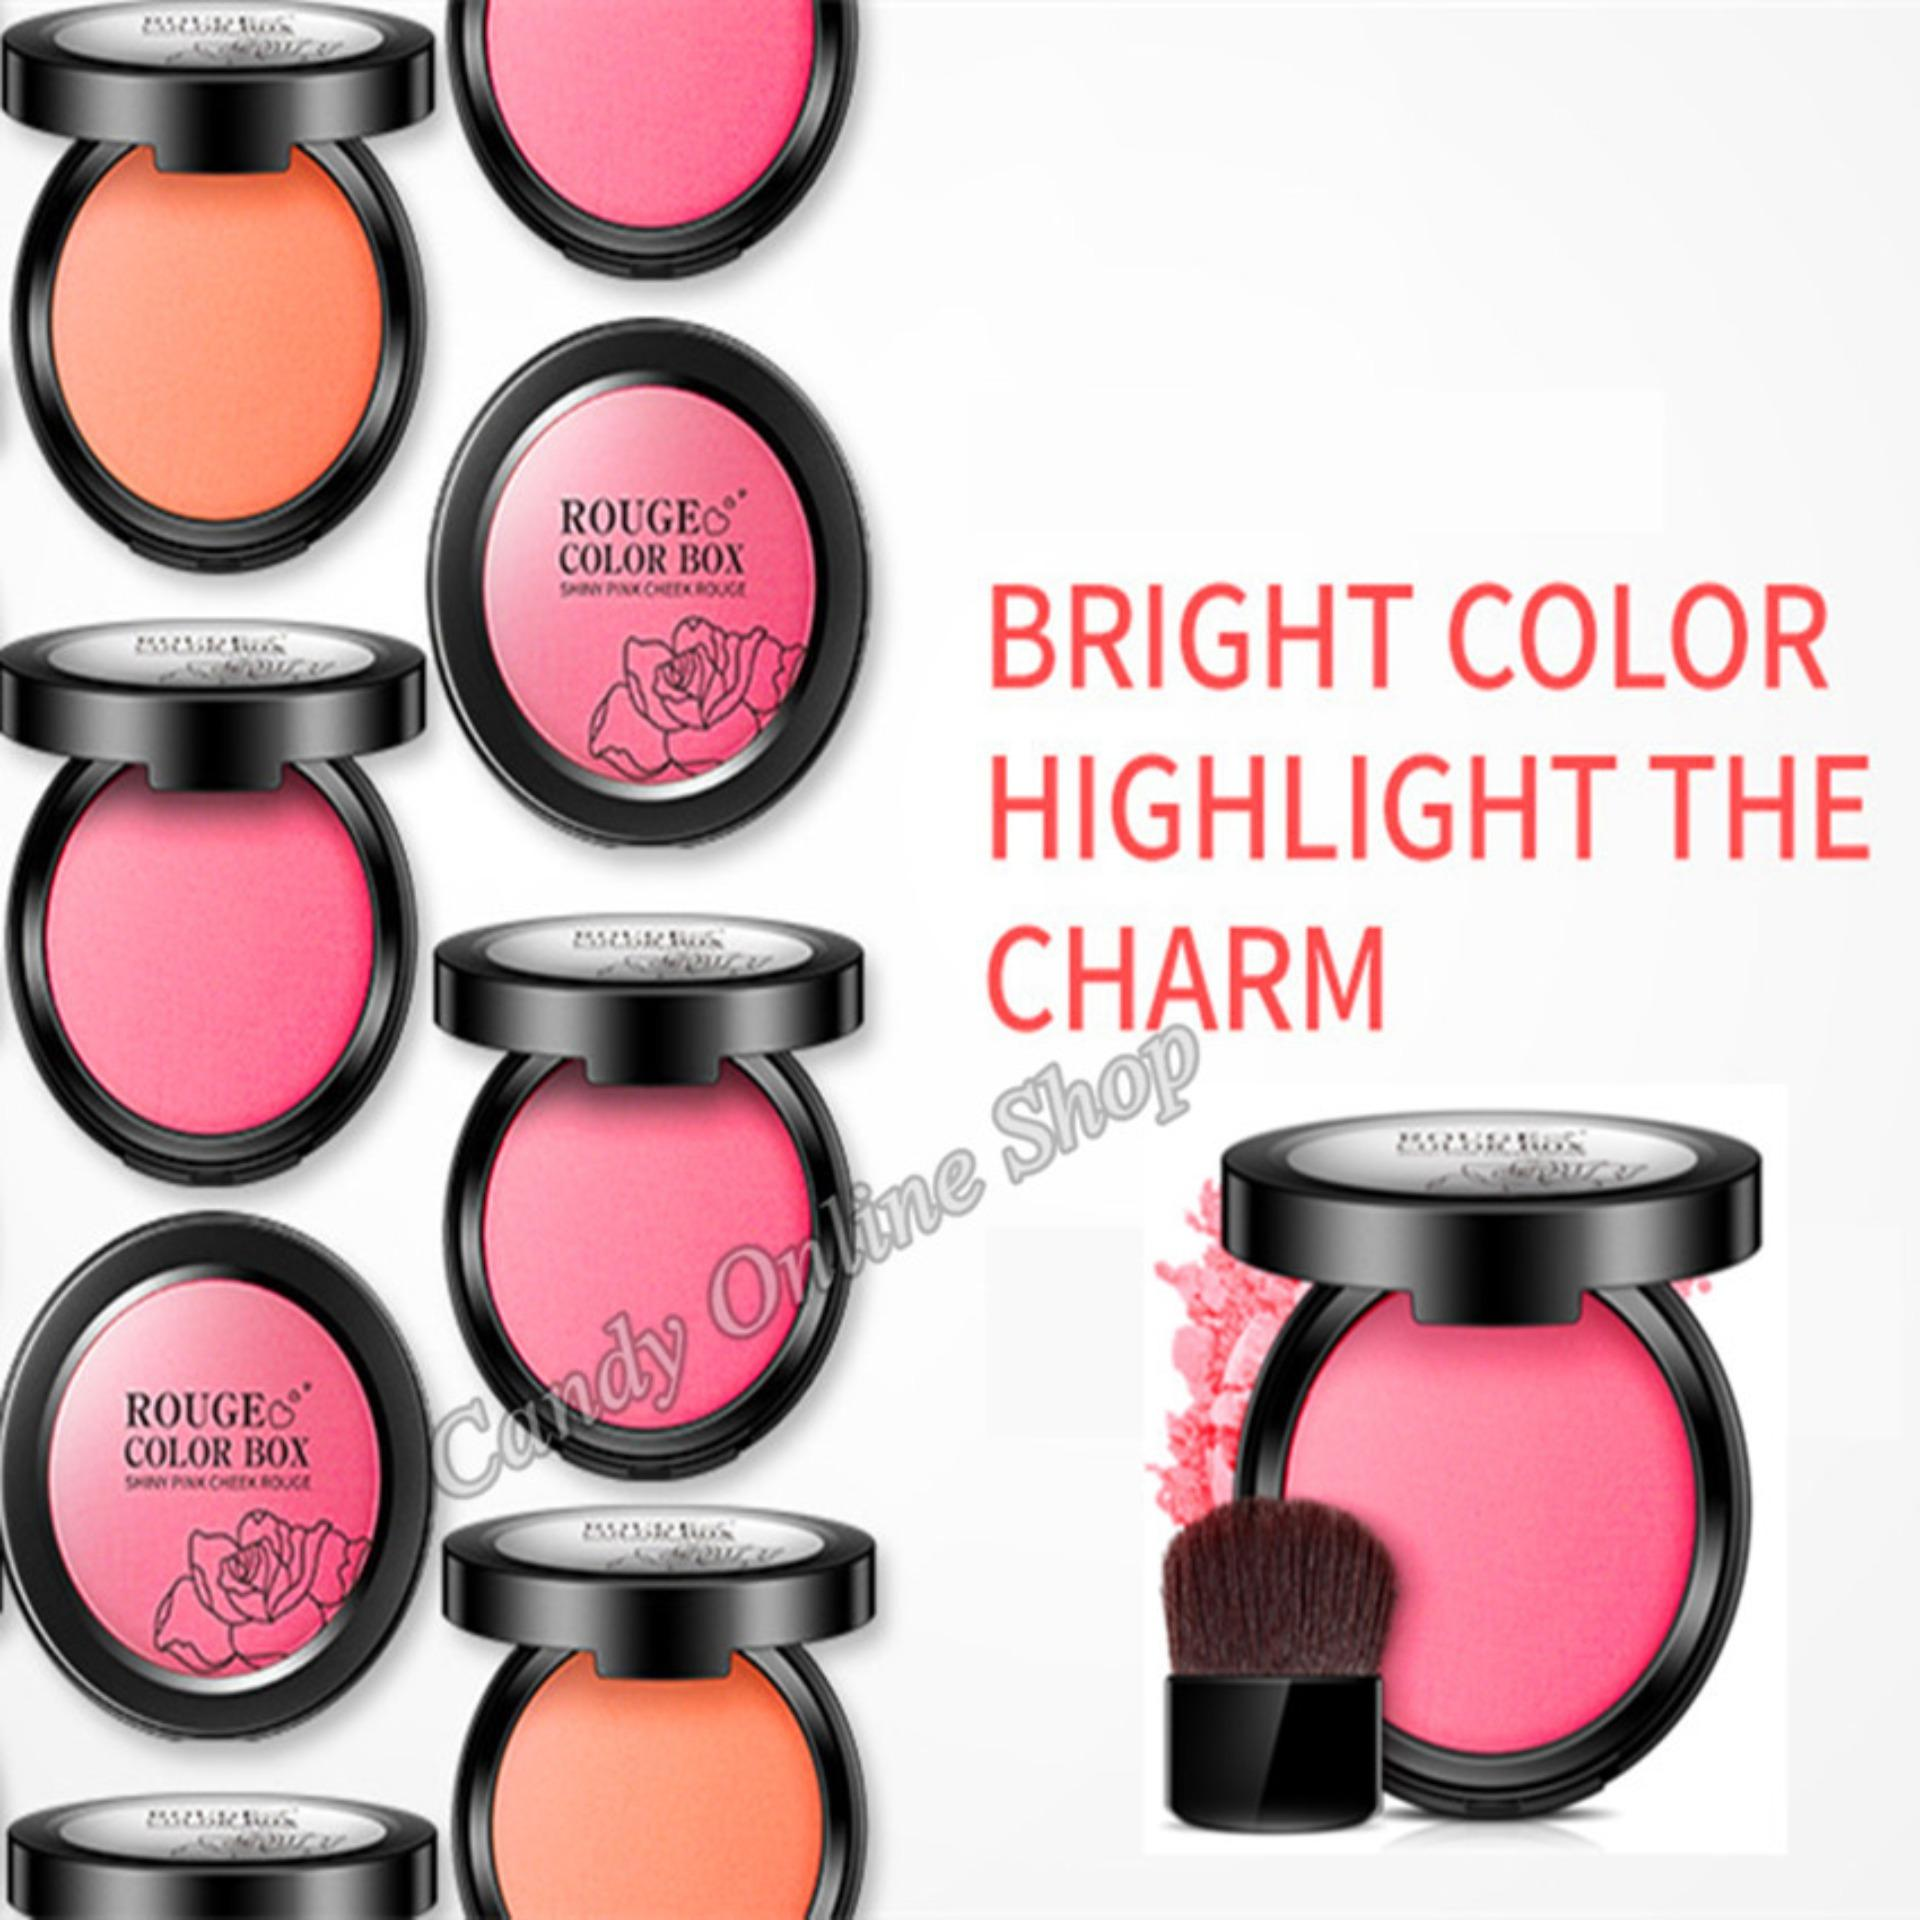 Philippines Candy Online Shiny Smooth Muscle Flawless Cheek Blush Bioaqua Smoot On 3